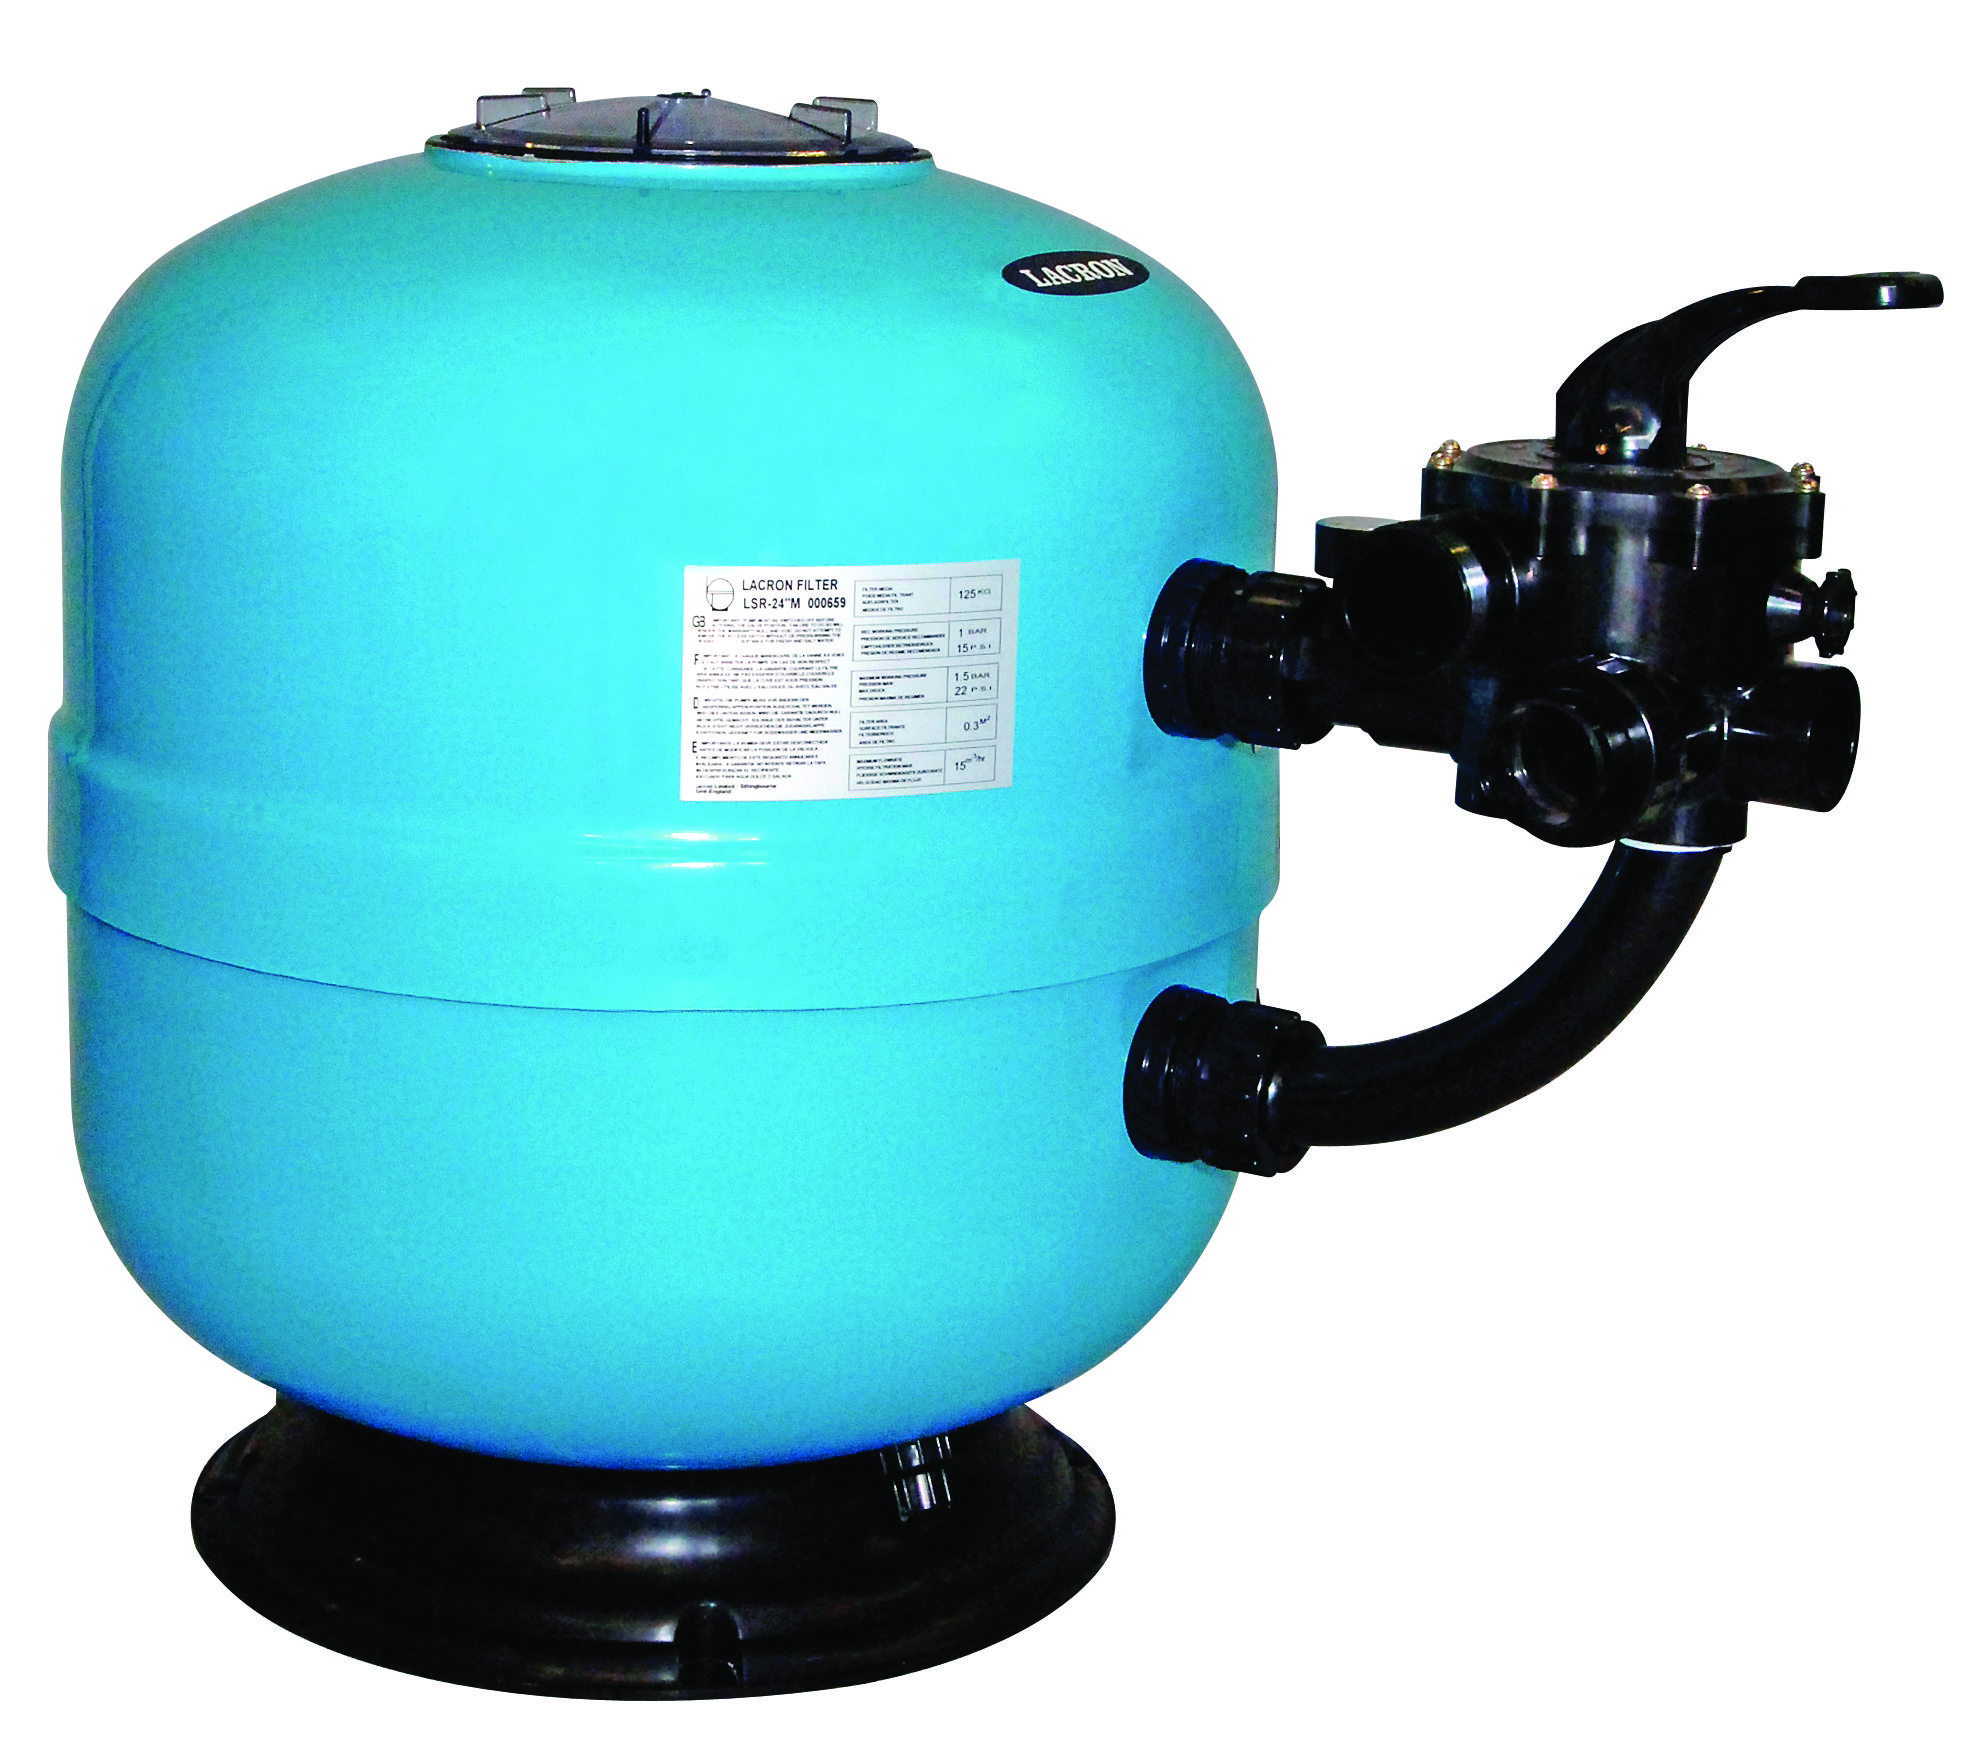 Swimming pool filter how to backwash a step by step guide - Glass filter media for swimming pools ...